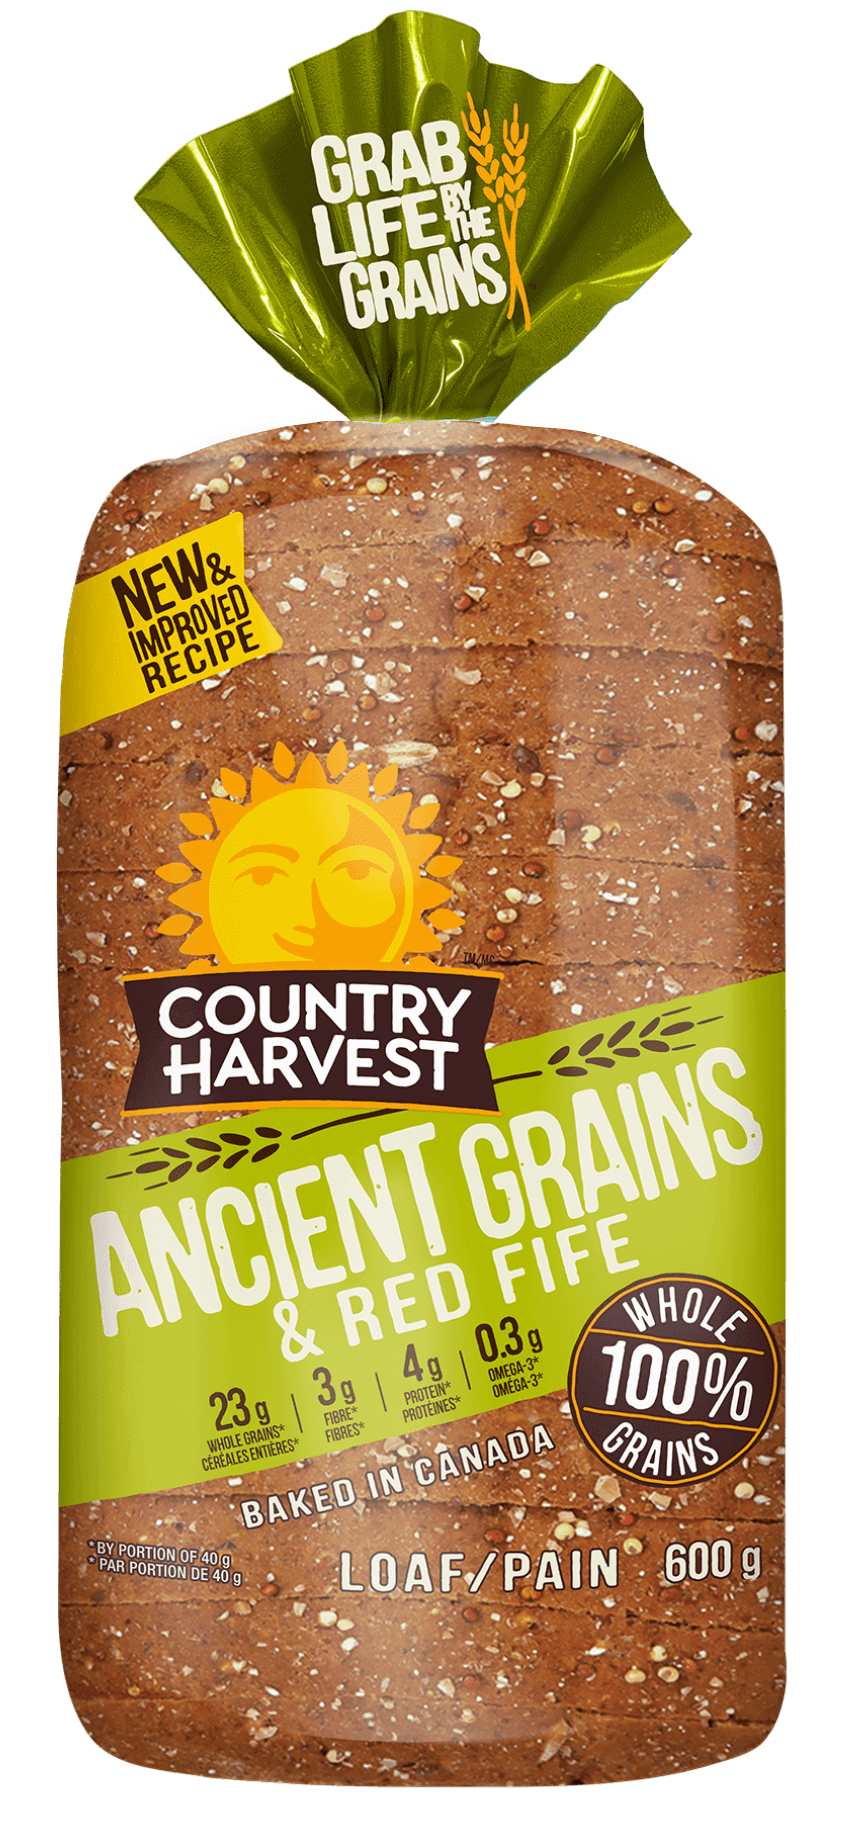 Country-Harvest-Ancient-Grains-PacK